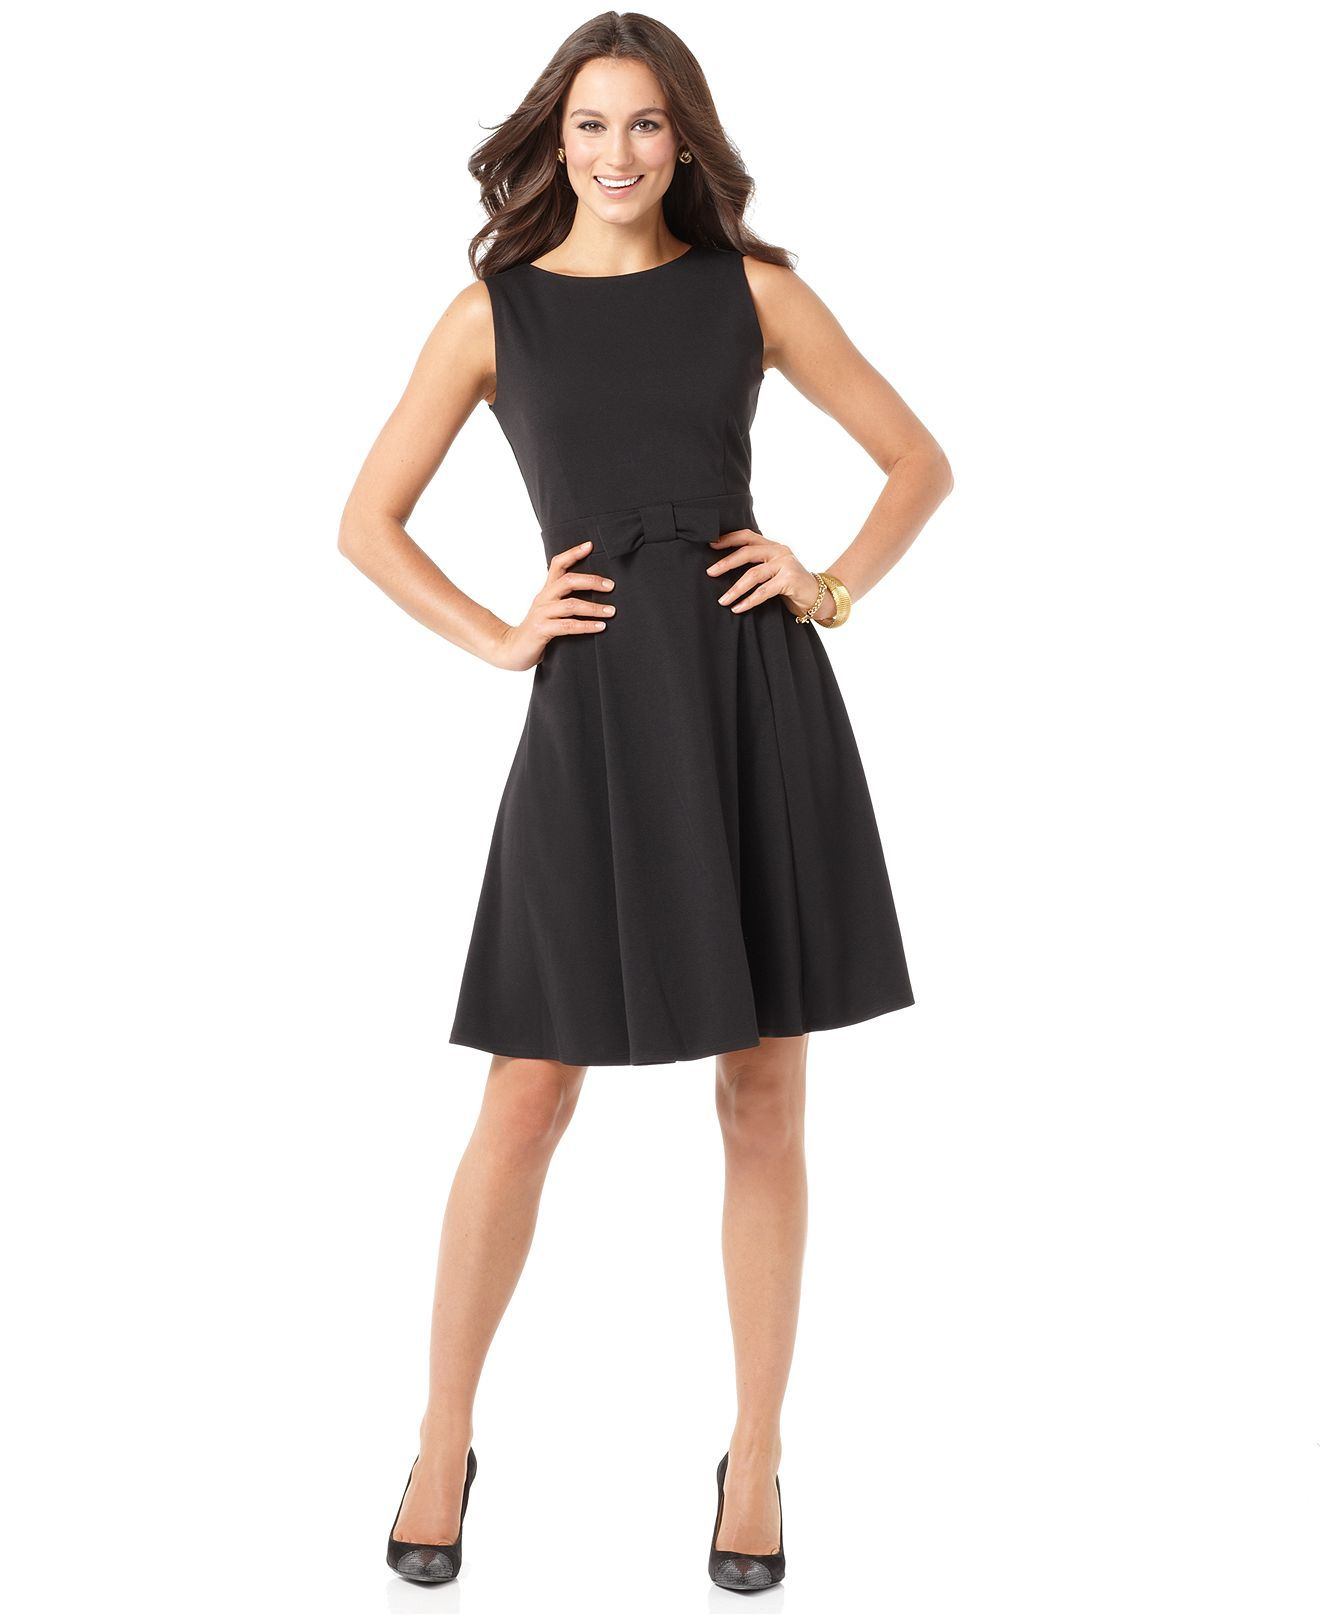 c984046597 Who doesn t love a little black dress  This is appropriate to wear for the  Awards Banquet or Rose Banquet.